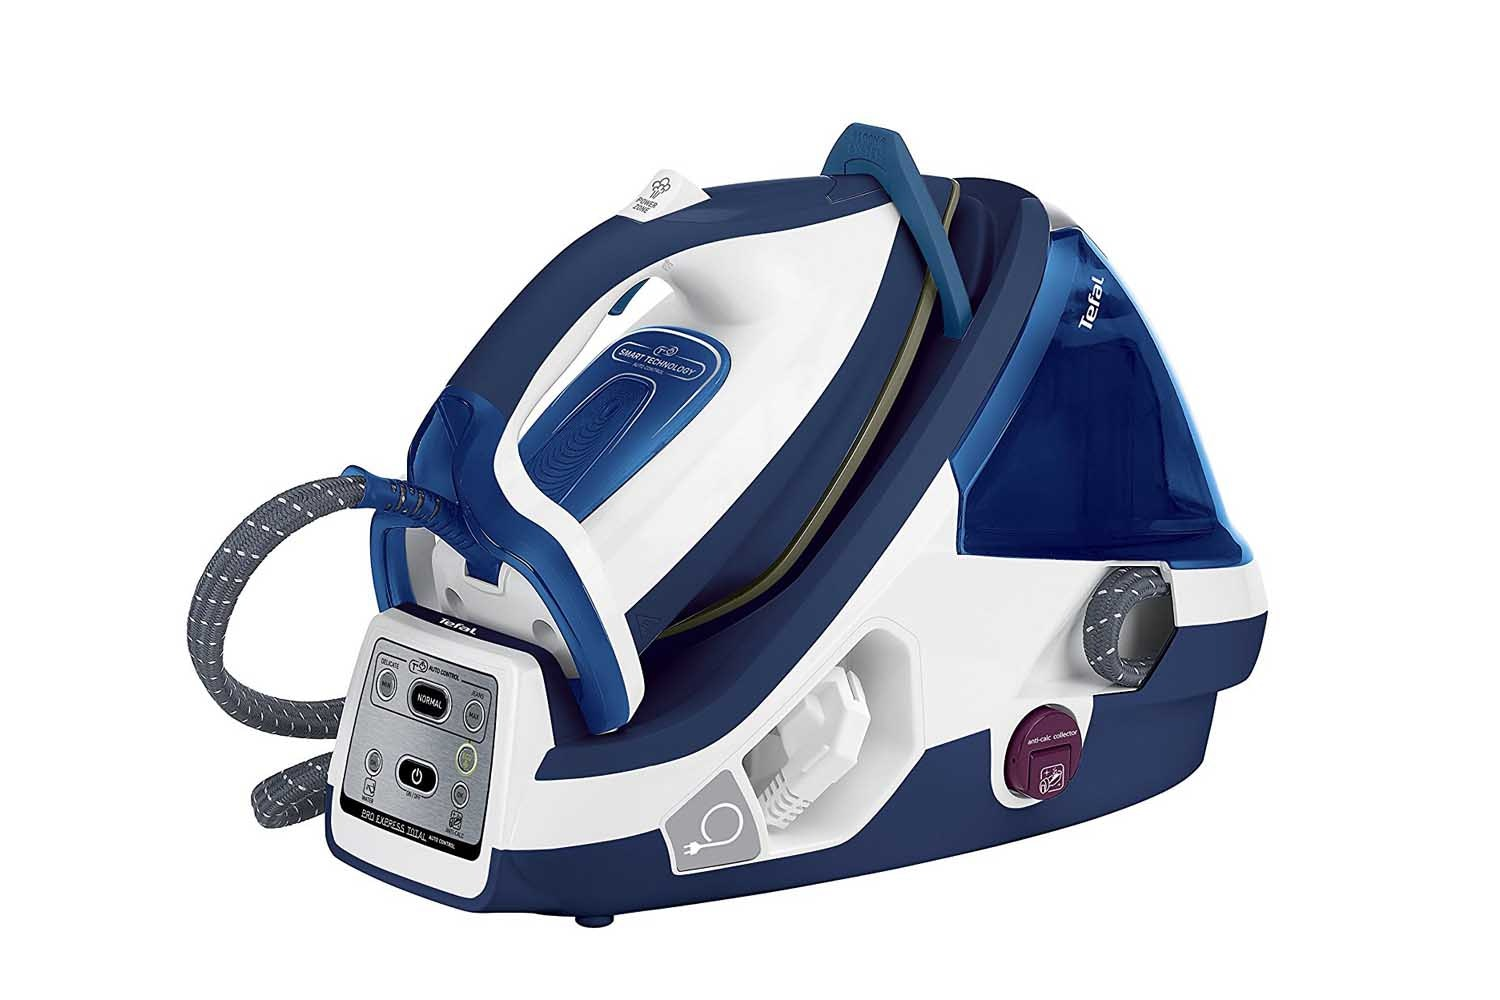 Tefal Steam Generator Iron | GV8962G0